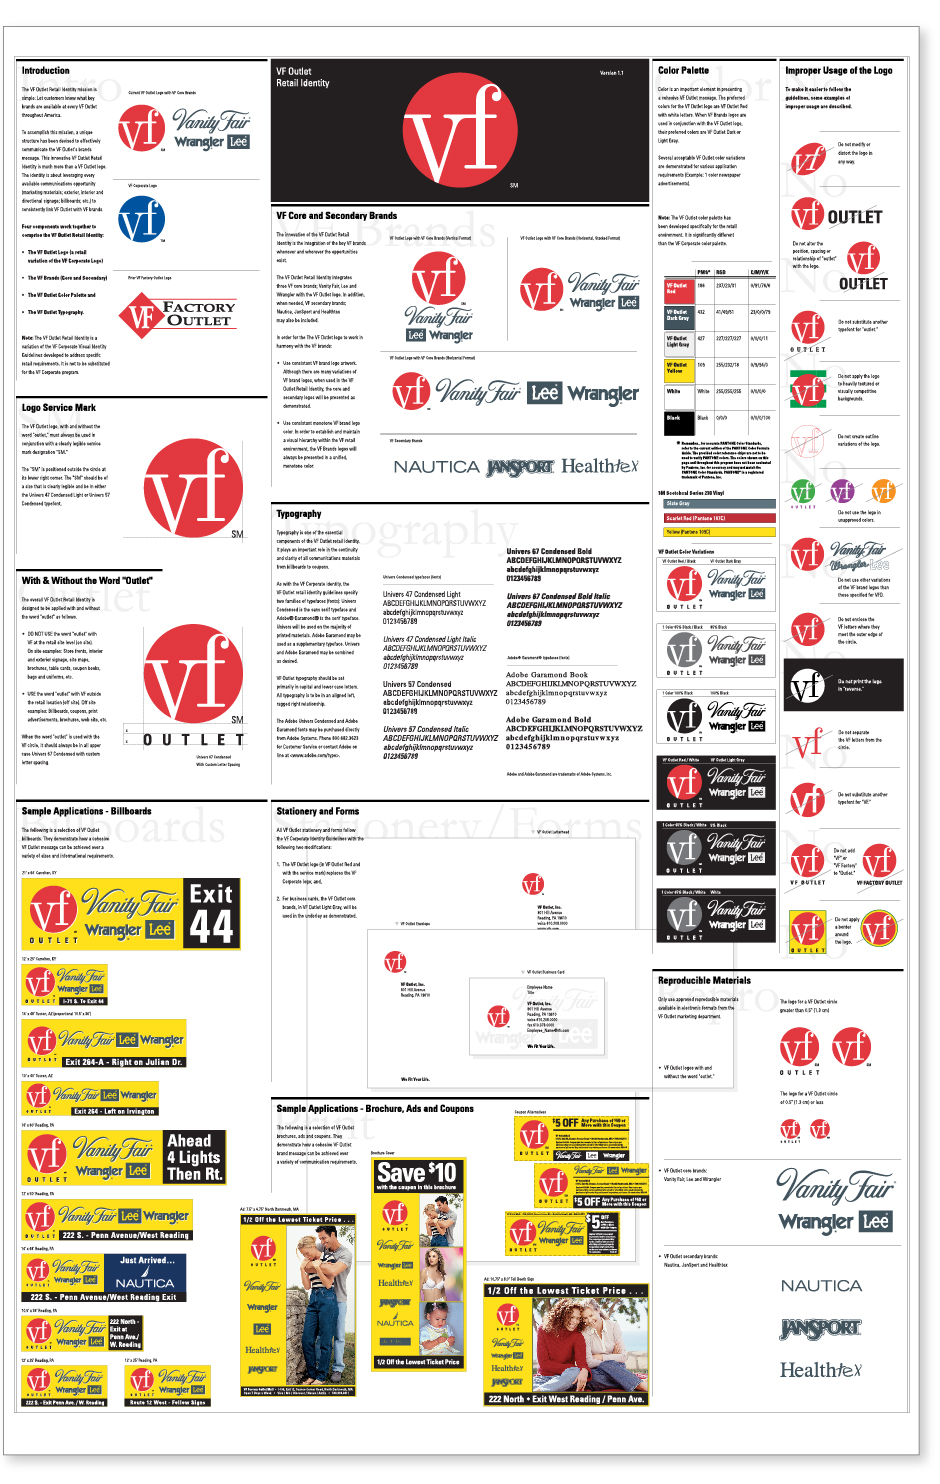 VF Outlet Identity Poster